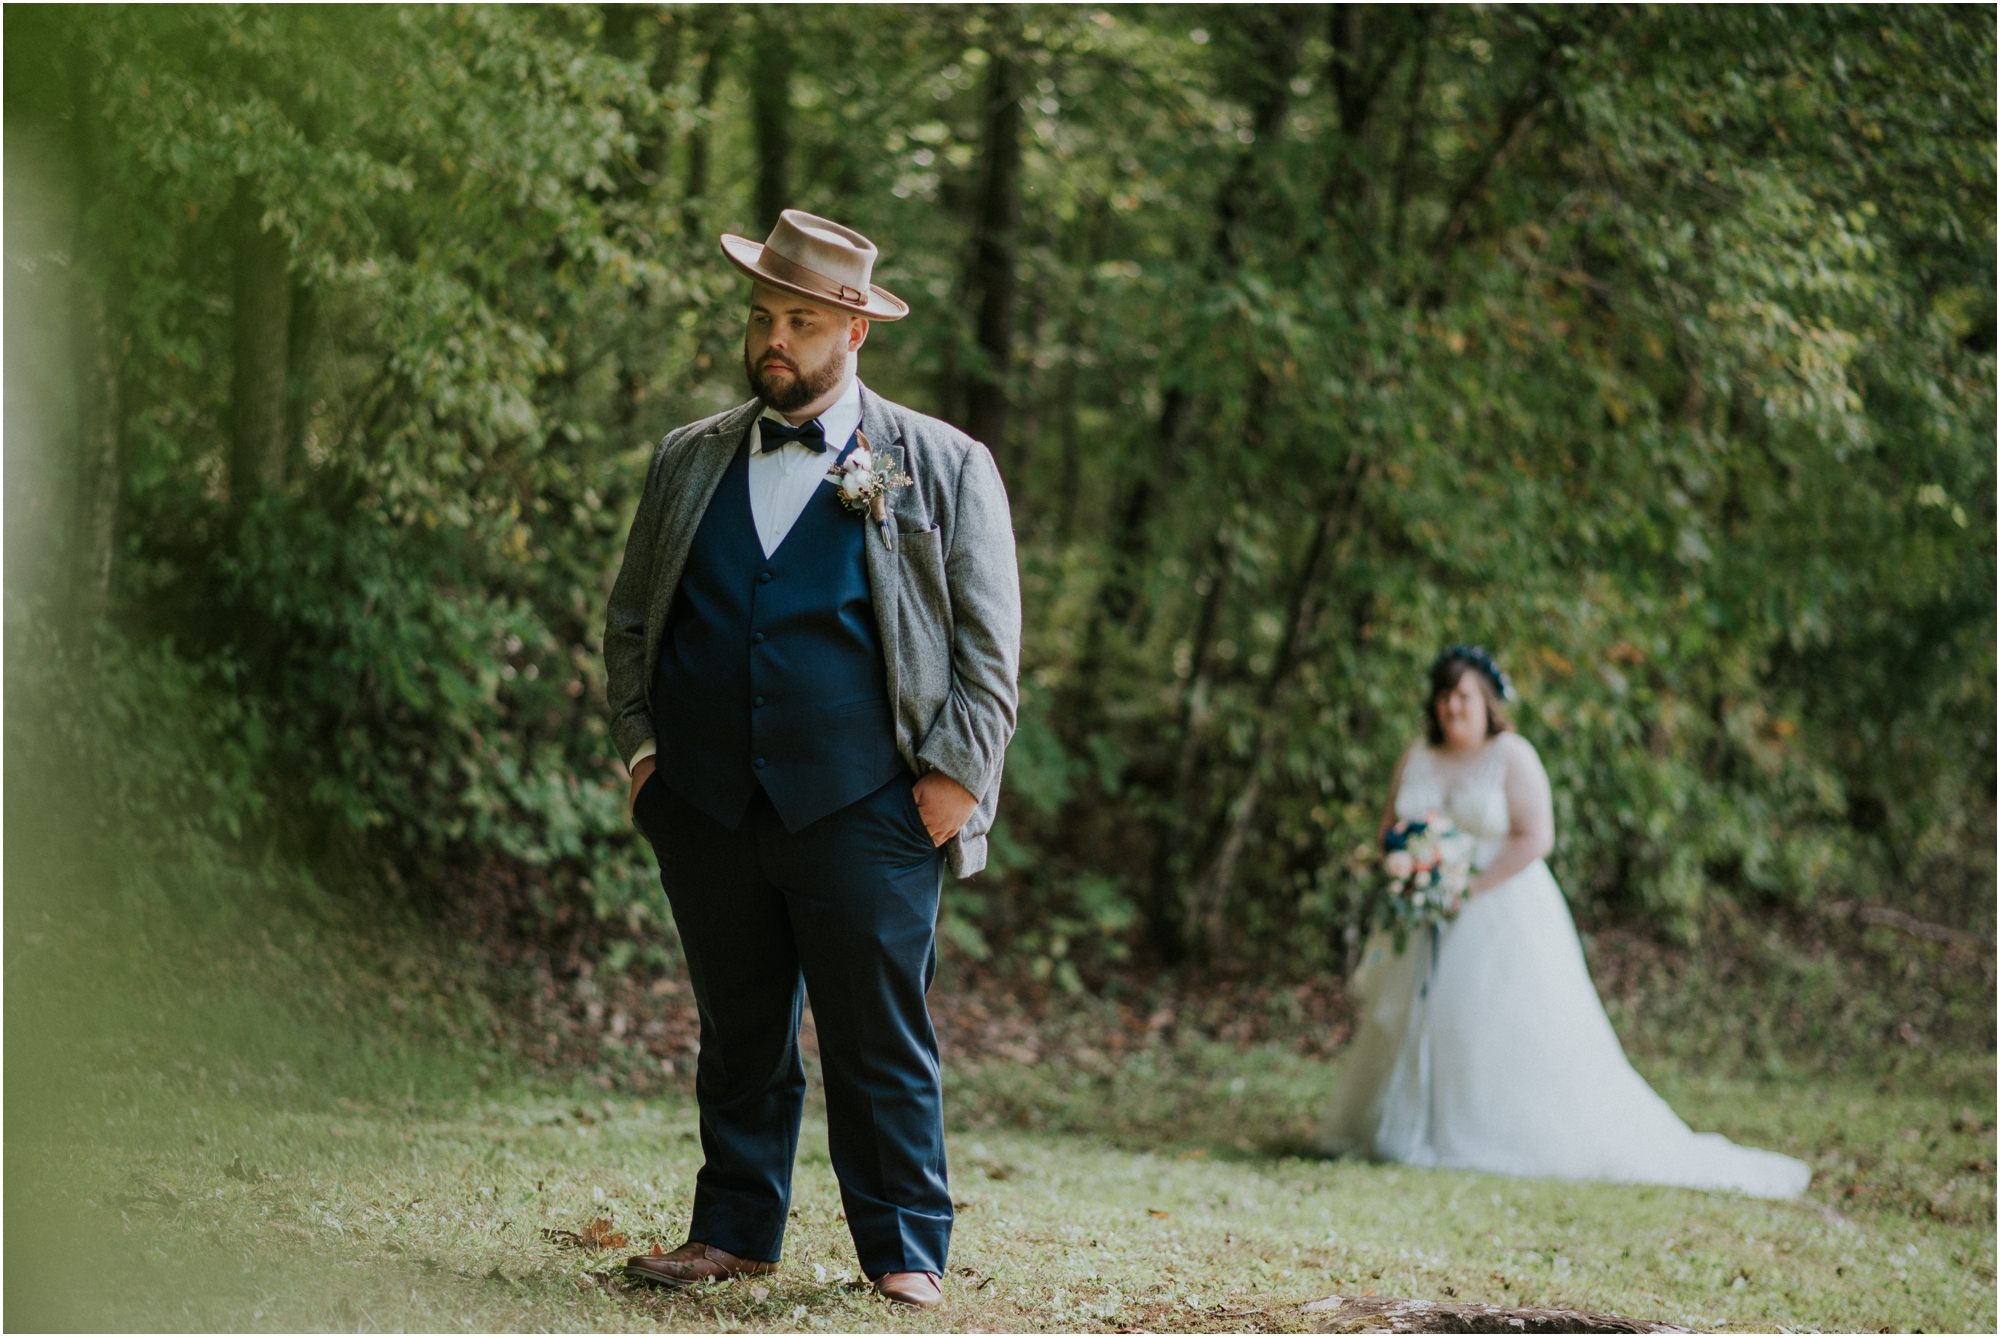 caryville-robbins-middle-tennessee-intimate-cozy-fall-navy-rustic-backyard-wedding_0036.jpg